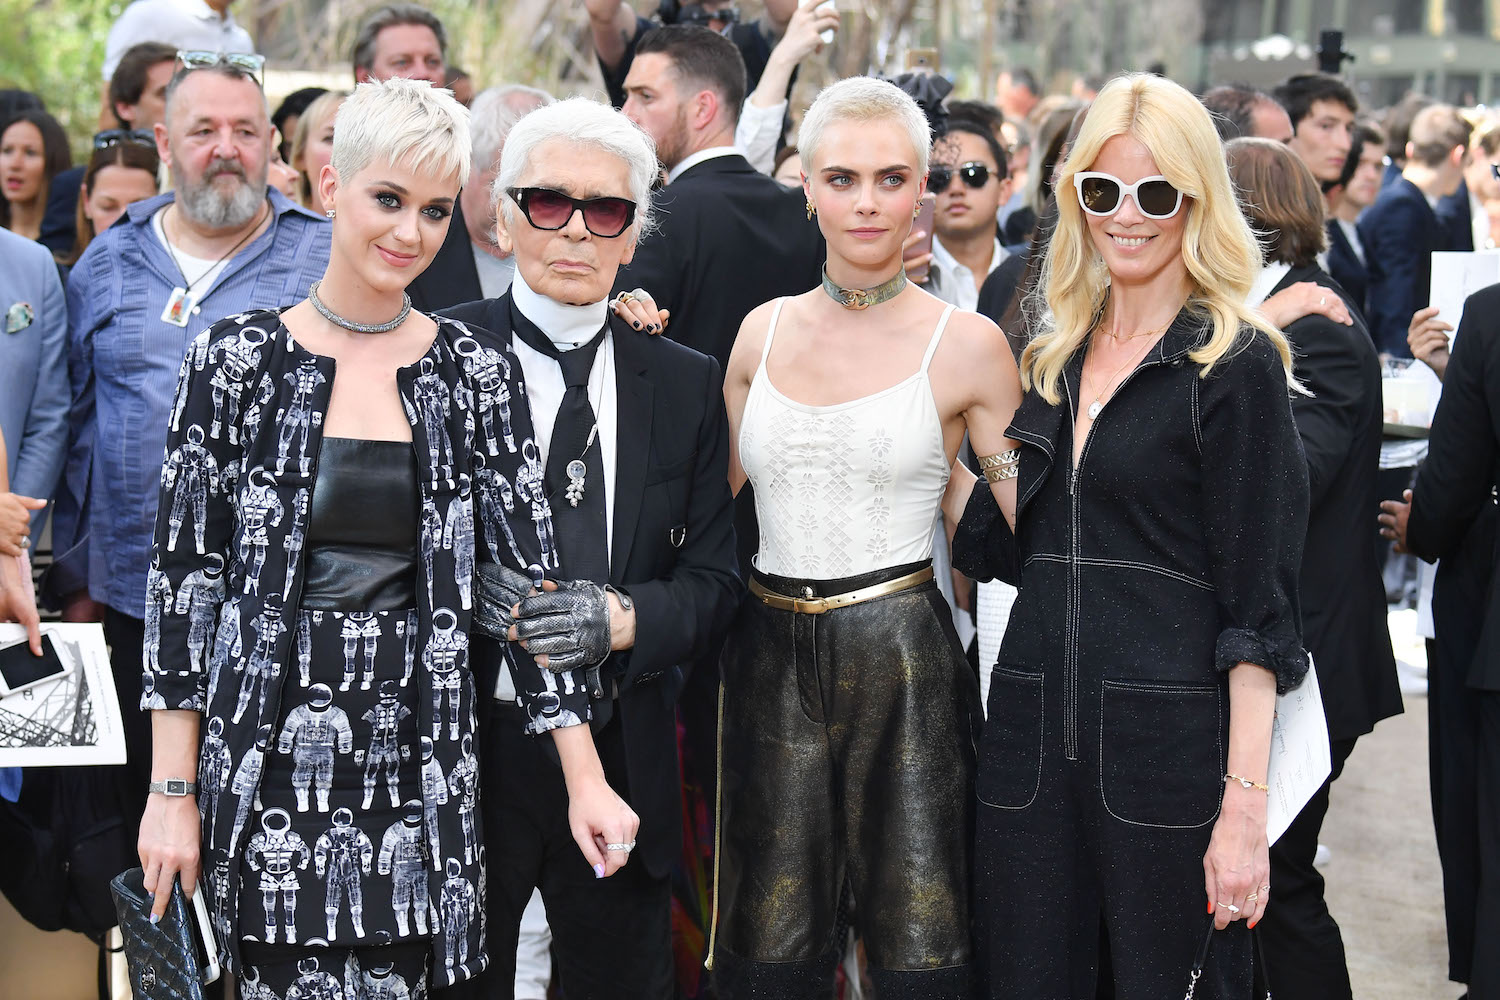 Karl Lagerfeld with Katy Perry, Cara Delevingne and Claudia Schiffer at a Chanel Show